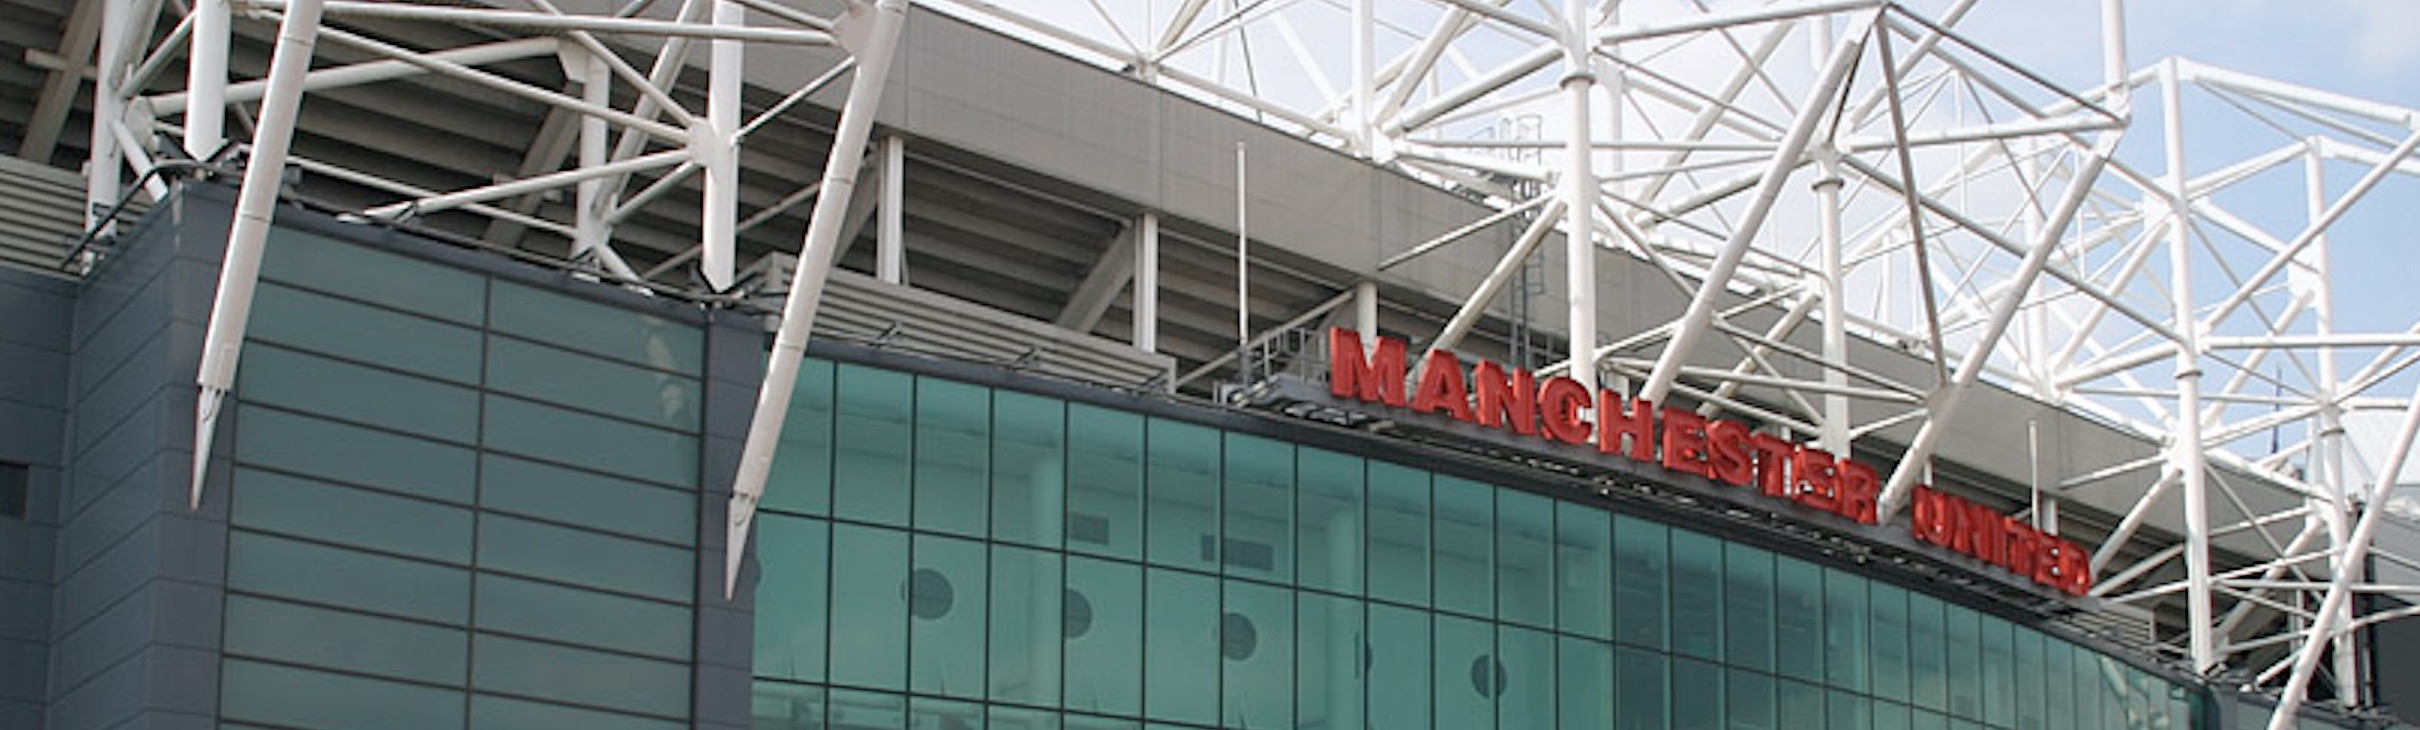 Man United V Bournemouth - Coach/Ferry & Hotel